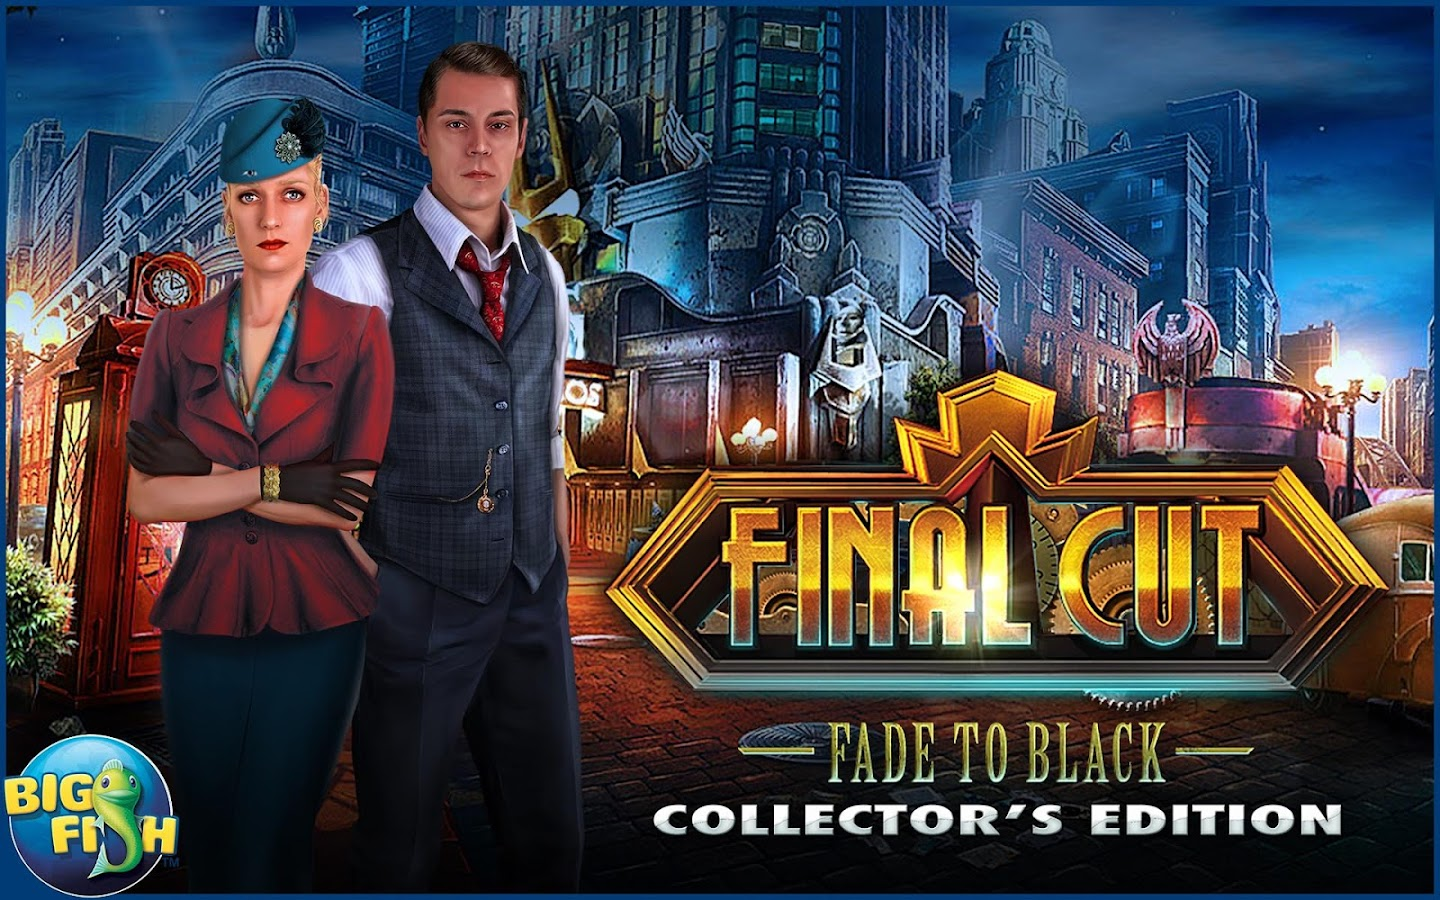 Final Cut: Fade to Black Screenshot 9